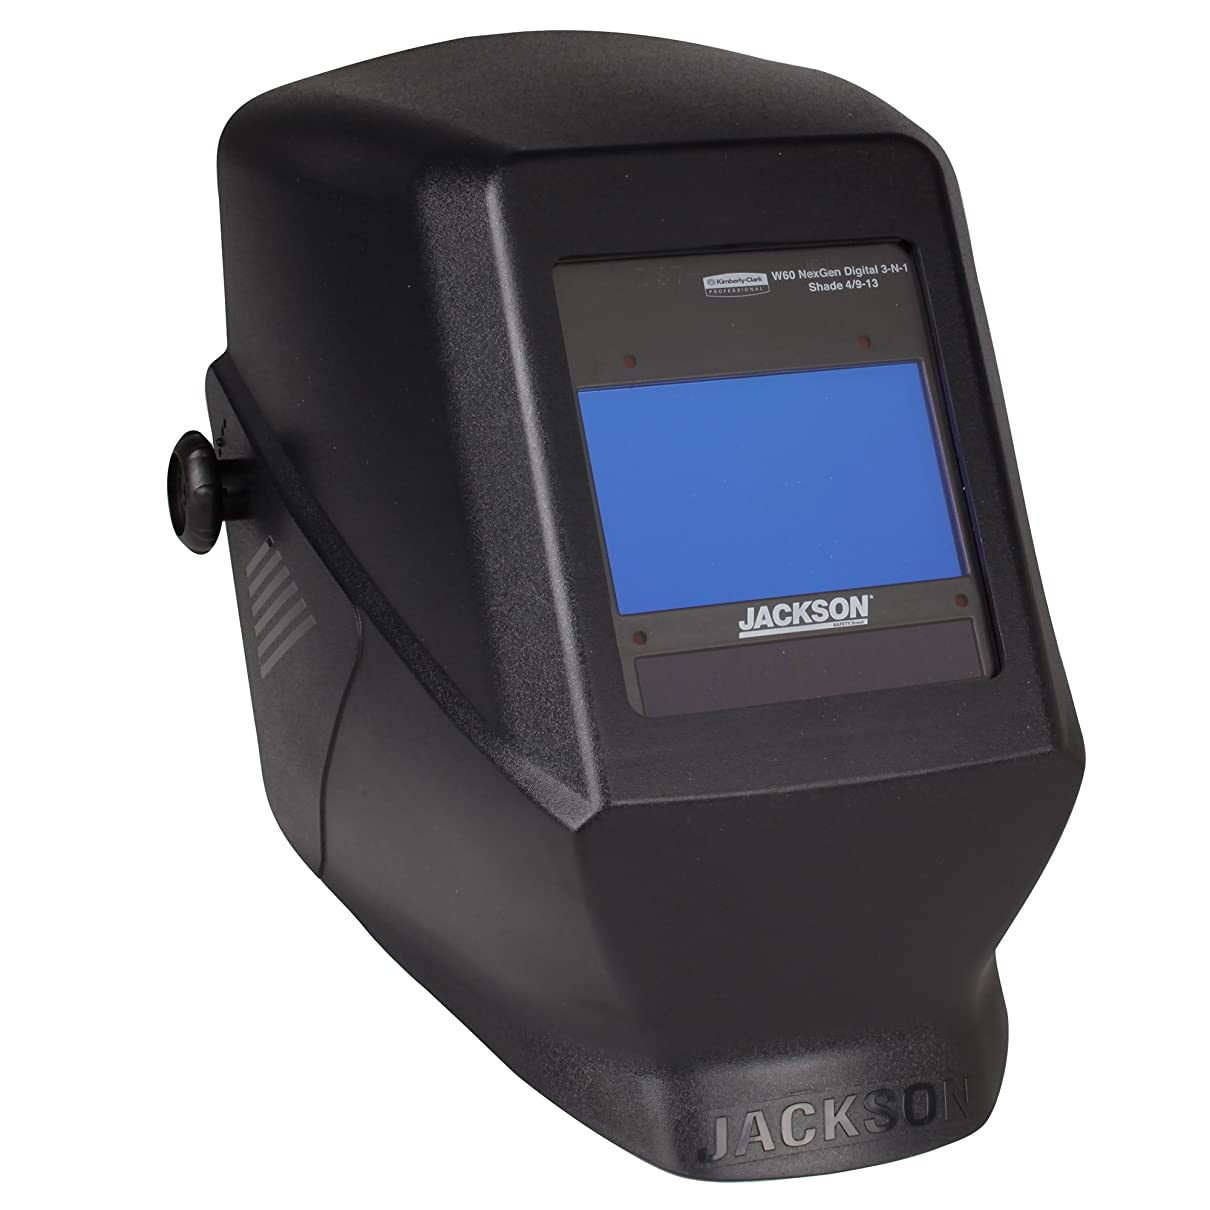 チャールズキージング化粧望みJackson Safety HSL 100 Welding Helmet with NEXGEN 3-in-1 ADF (46148), Digital Auto Darkening, Black, 1 / Case 141[並行輸入]